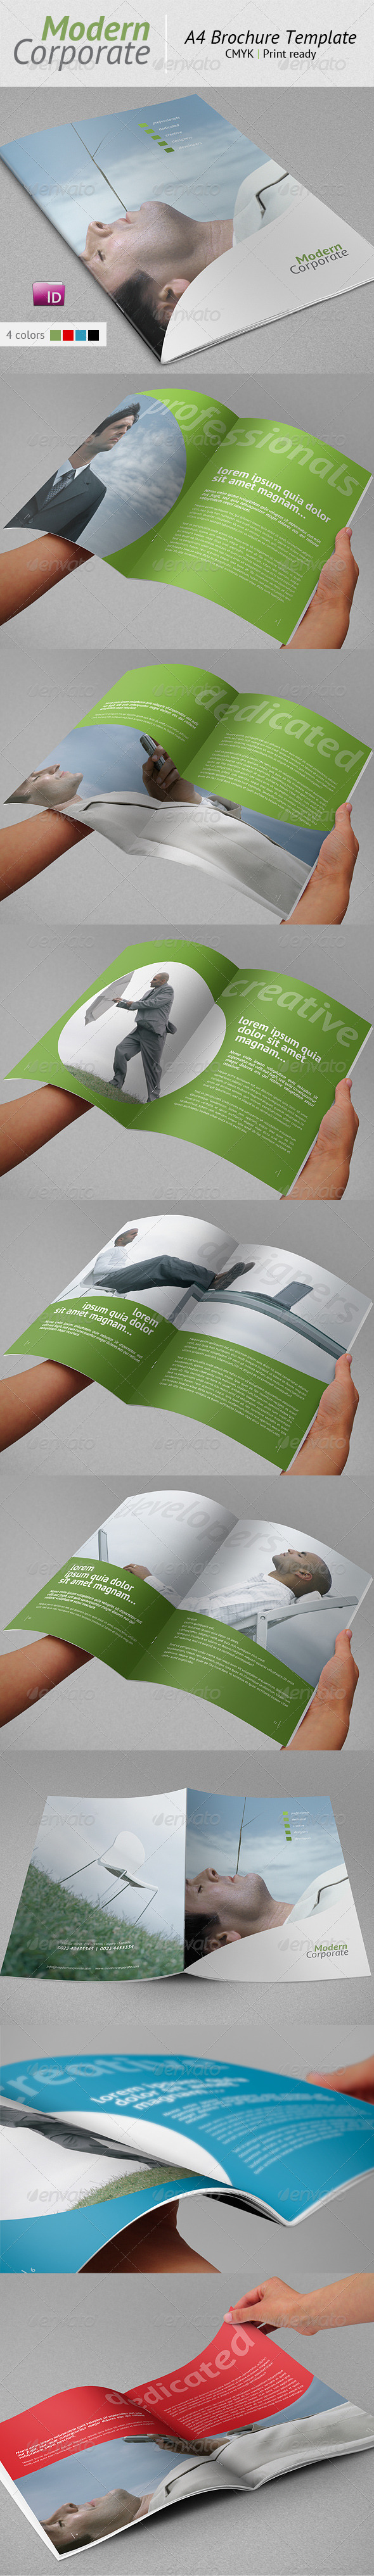 Modern Corporate A4 Brochure Template | 12 Pages - Corporate Brochures